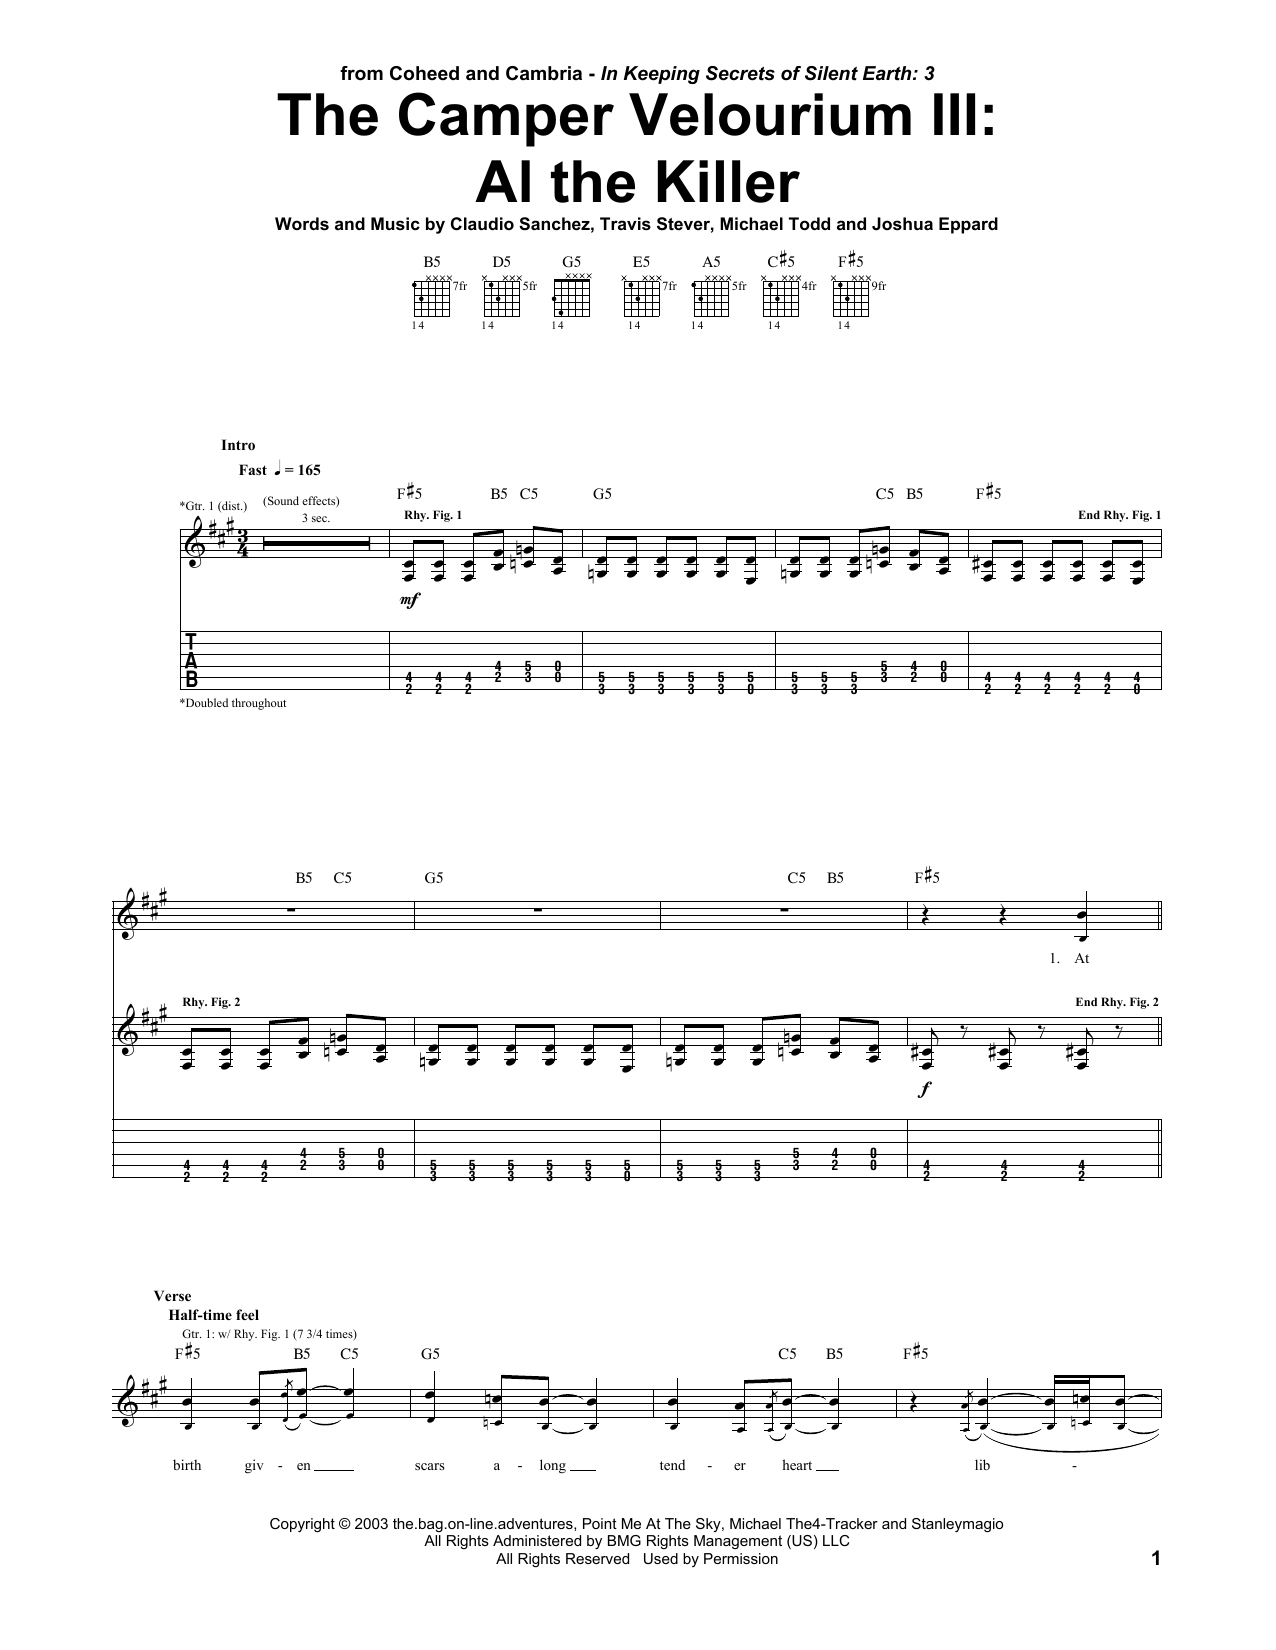 The Camper Velourium III: Al The Killer Sheet Music